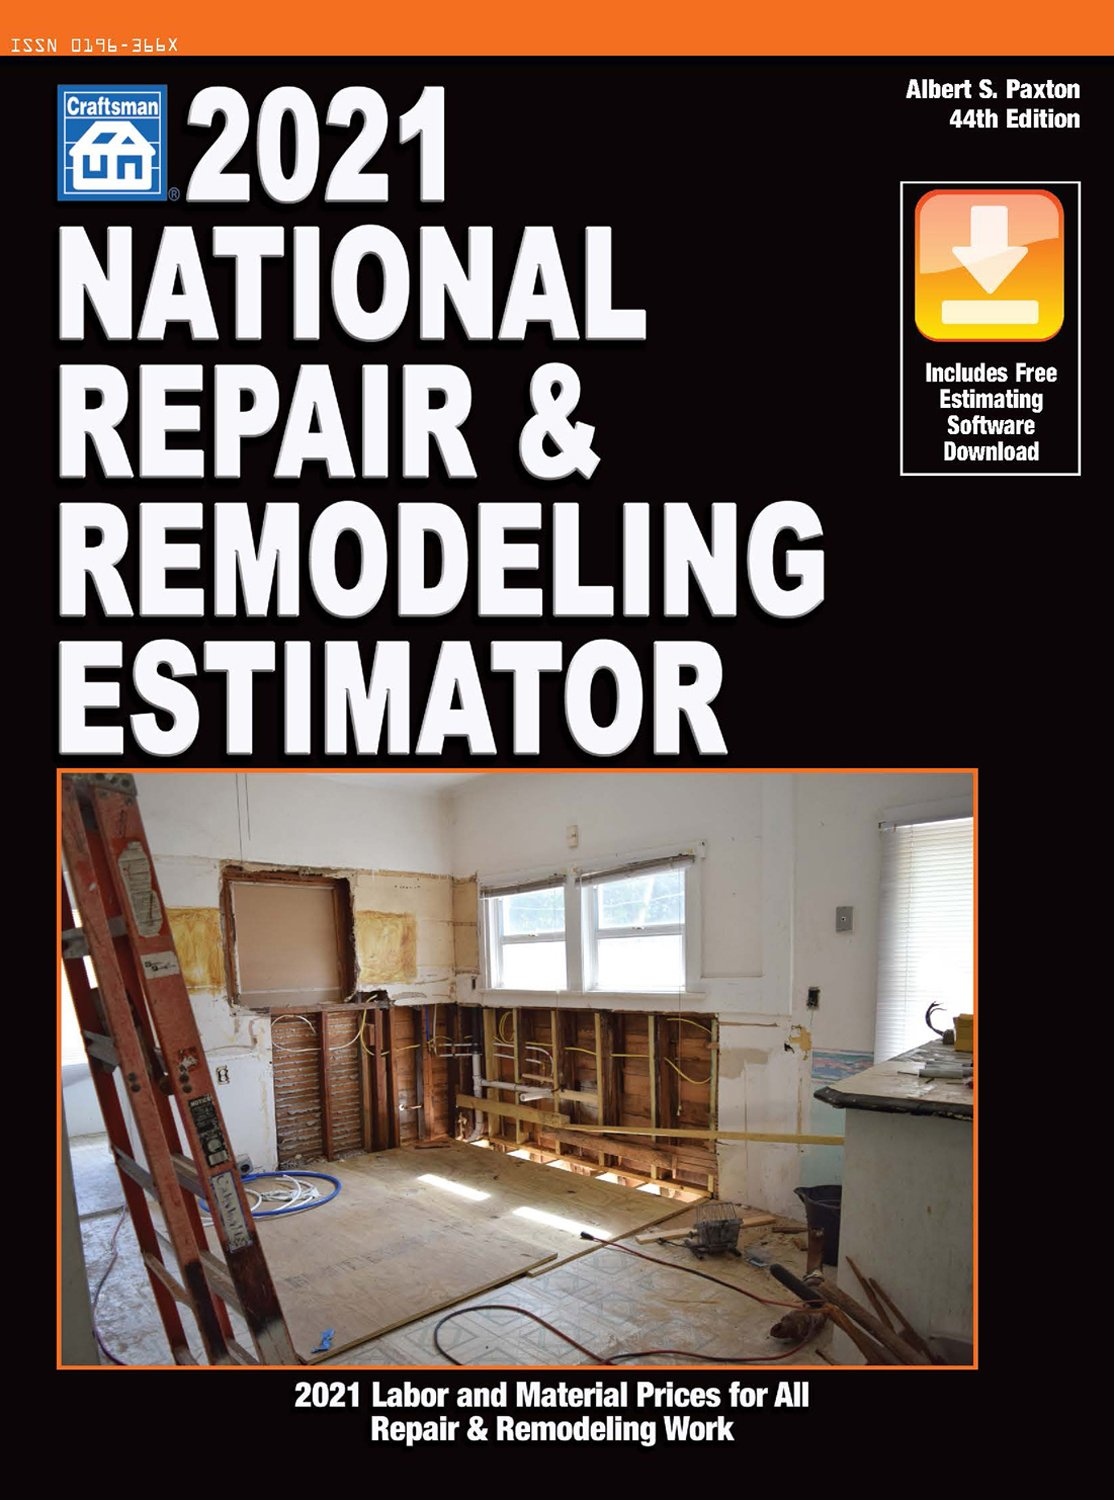 2021 National Repair & Remodeling Estimator